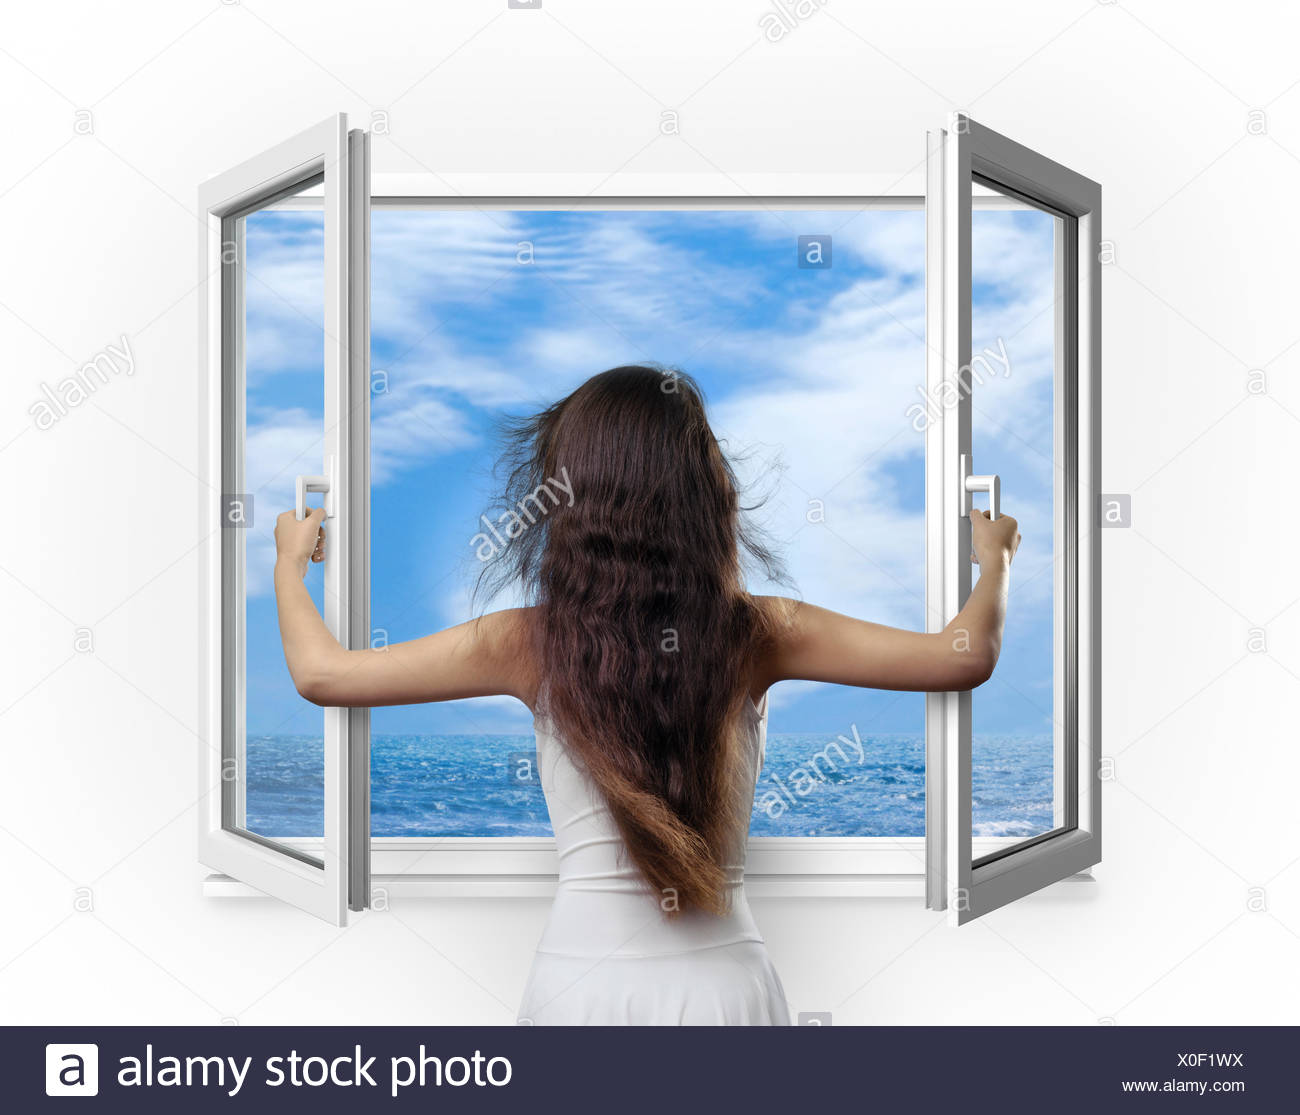 Young woman opening a window with a view onto the sea - Stock Image